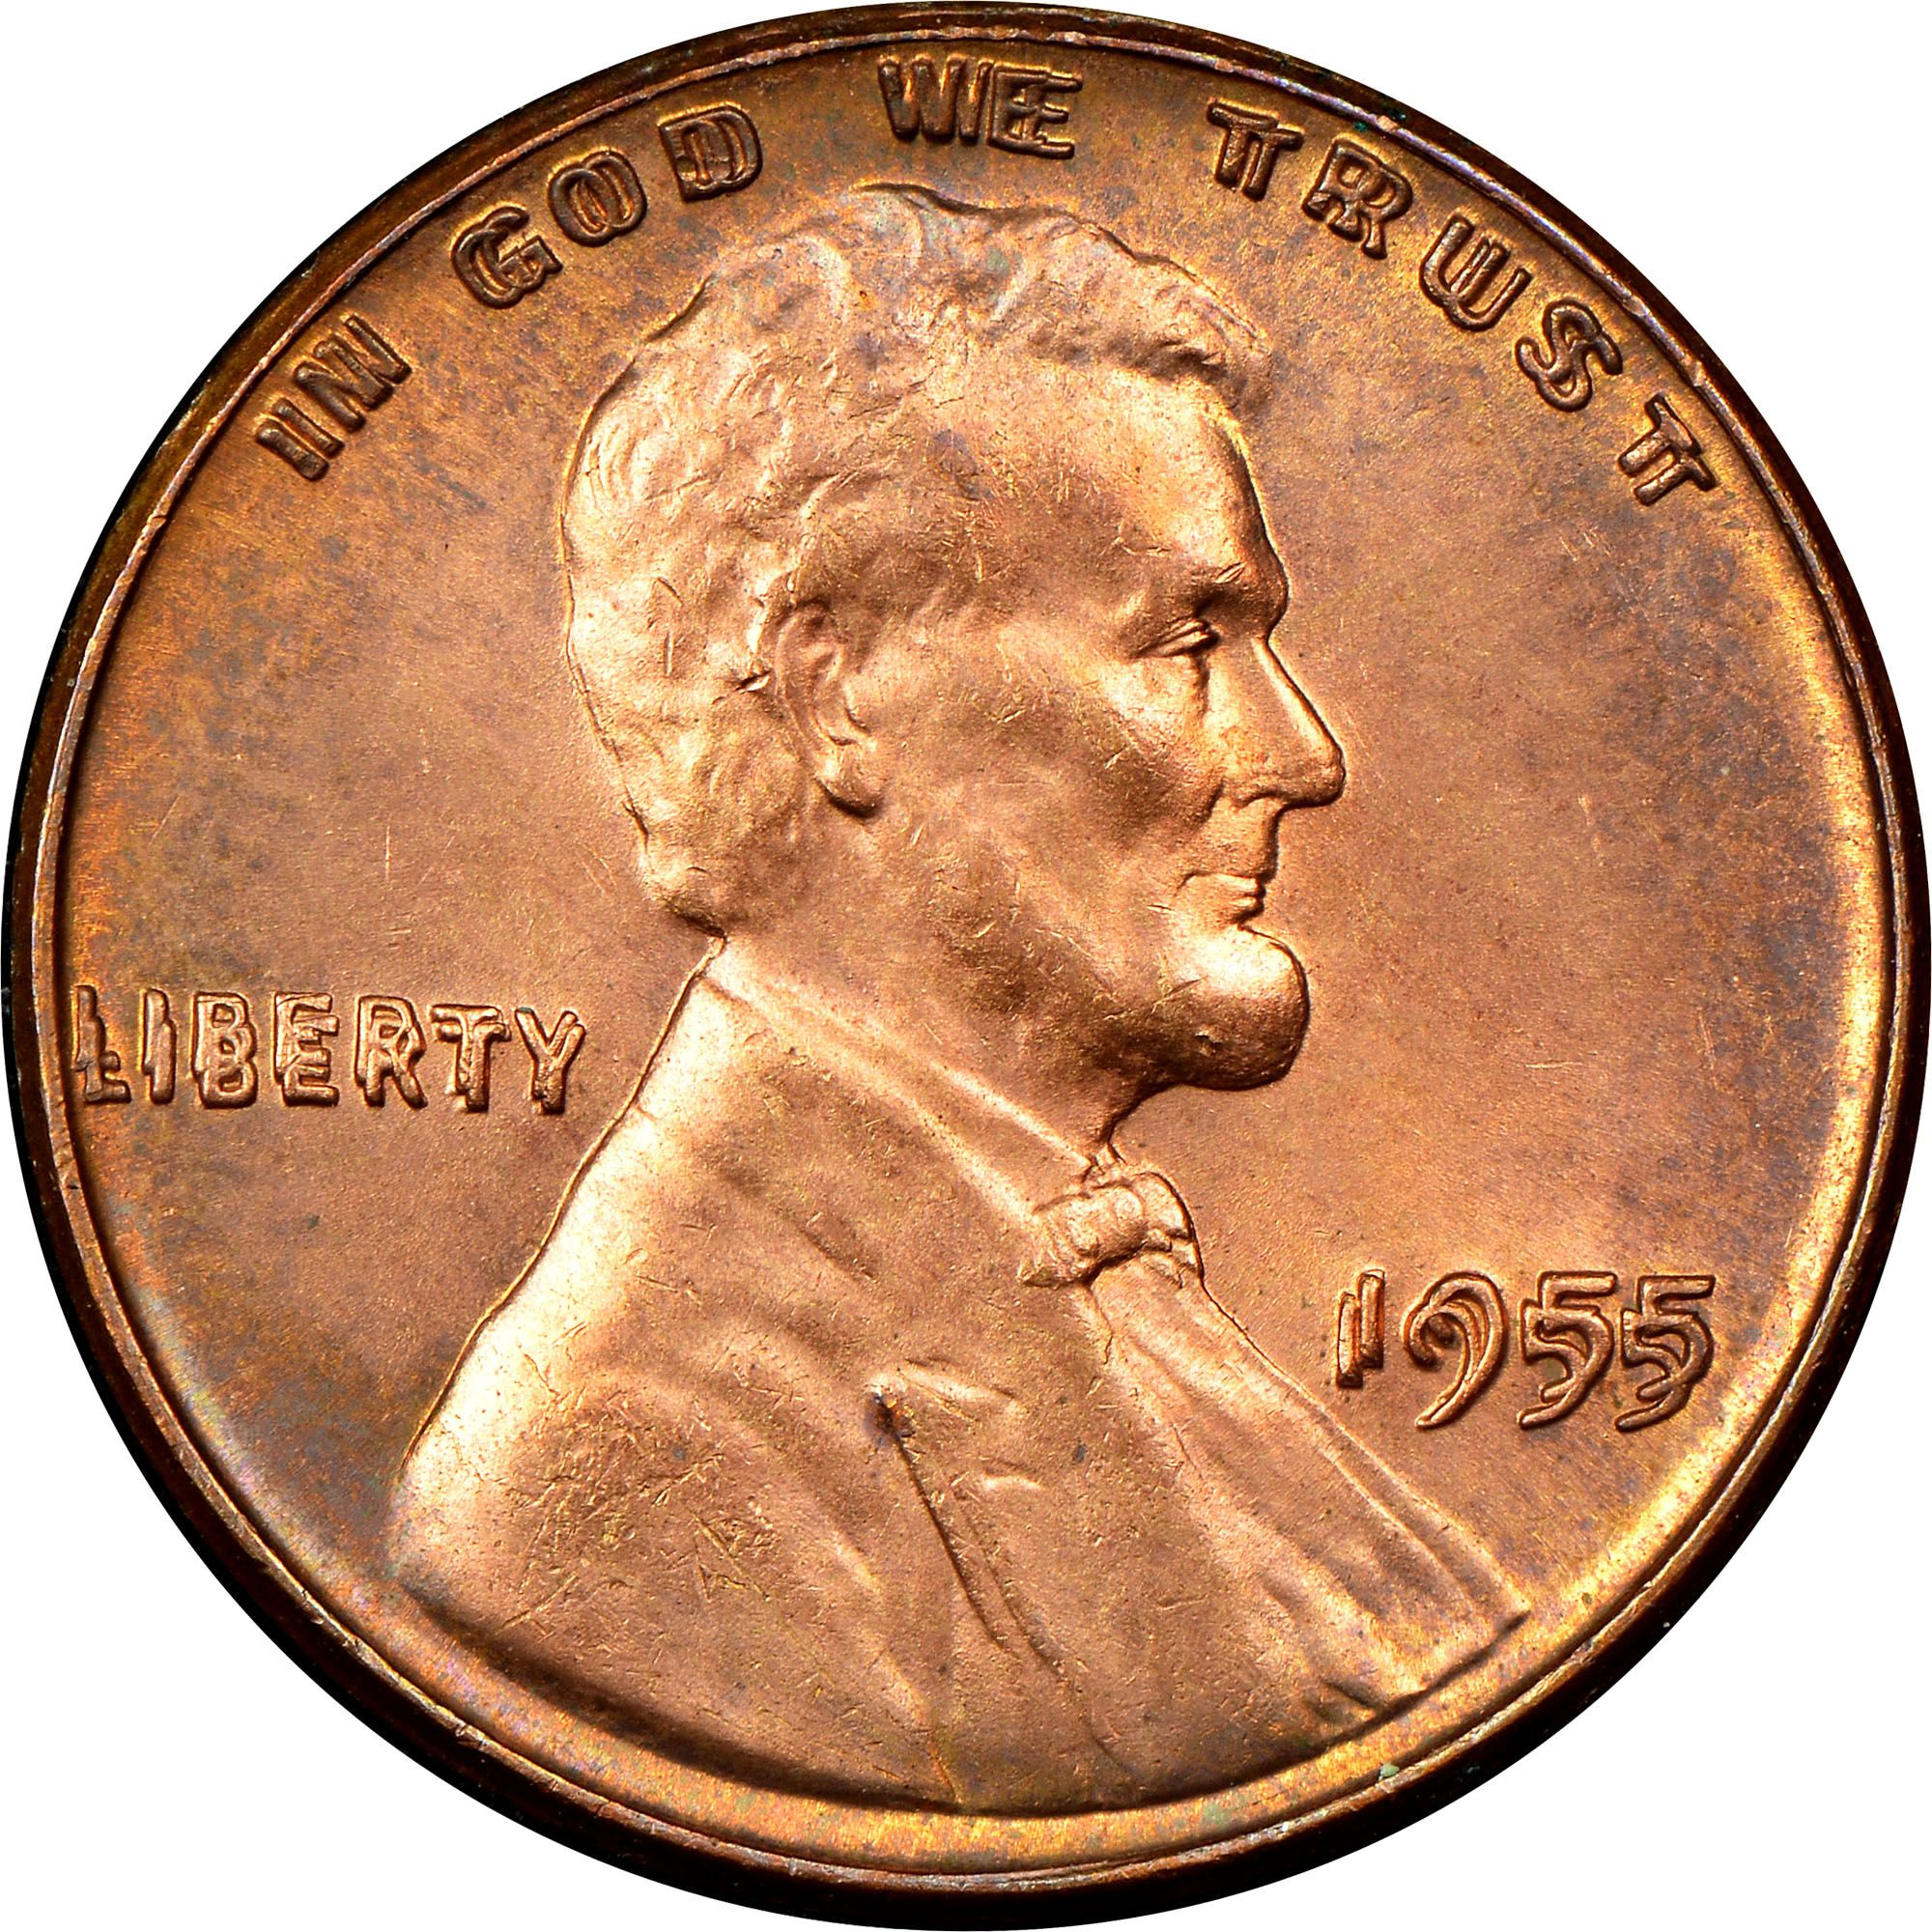 1955 Doubled Die Penny You May Think You Re Experiencing Blurred Vision If You Come Across A Doubled Die Penny Bu Valuable Coins Rare Coins Worth Money Coins